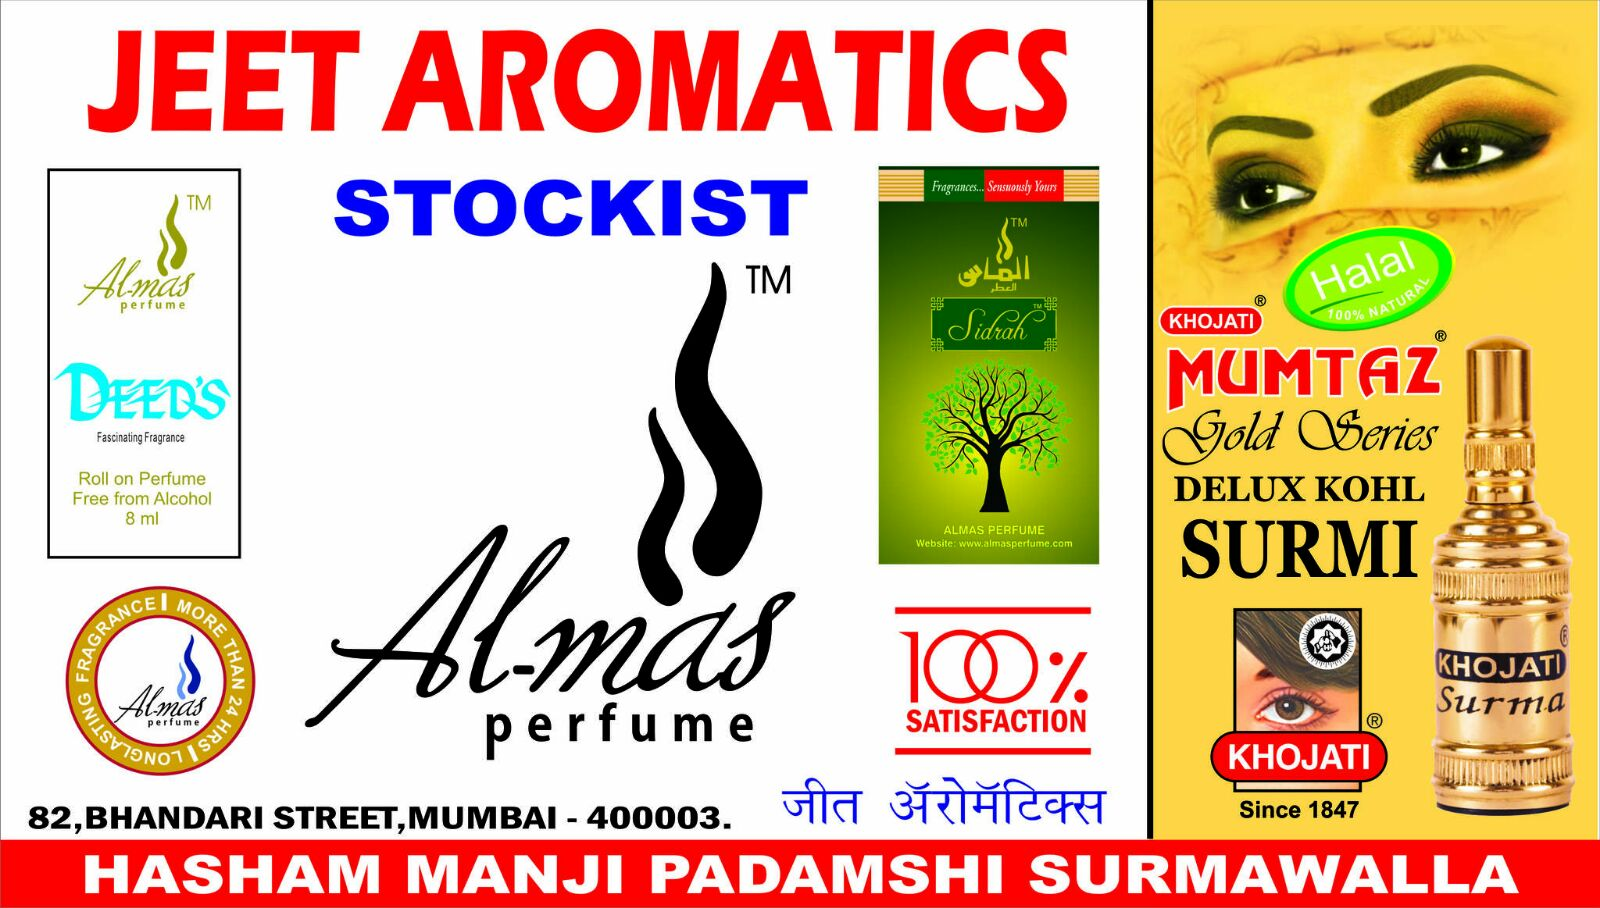 Wholesaler & Retailer of Various Kinds of Long-lasting Attars & Branded Perfumes